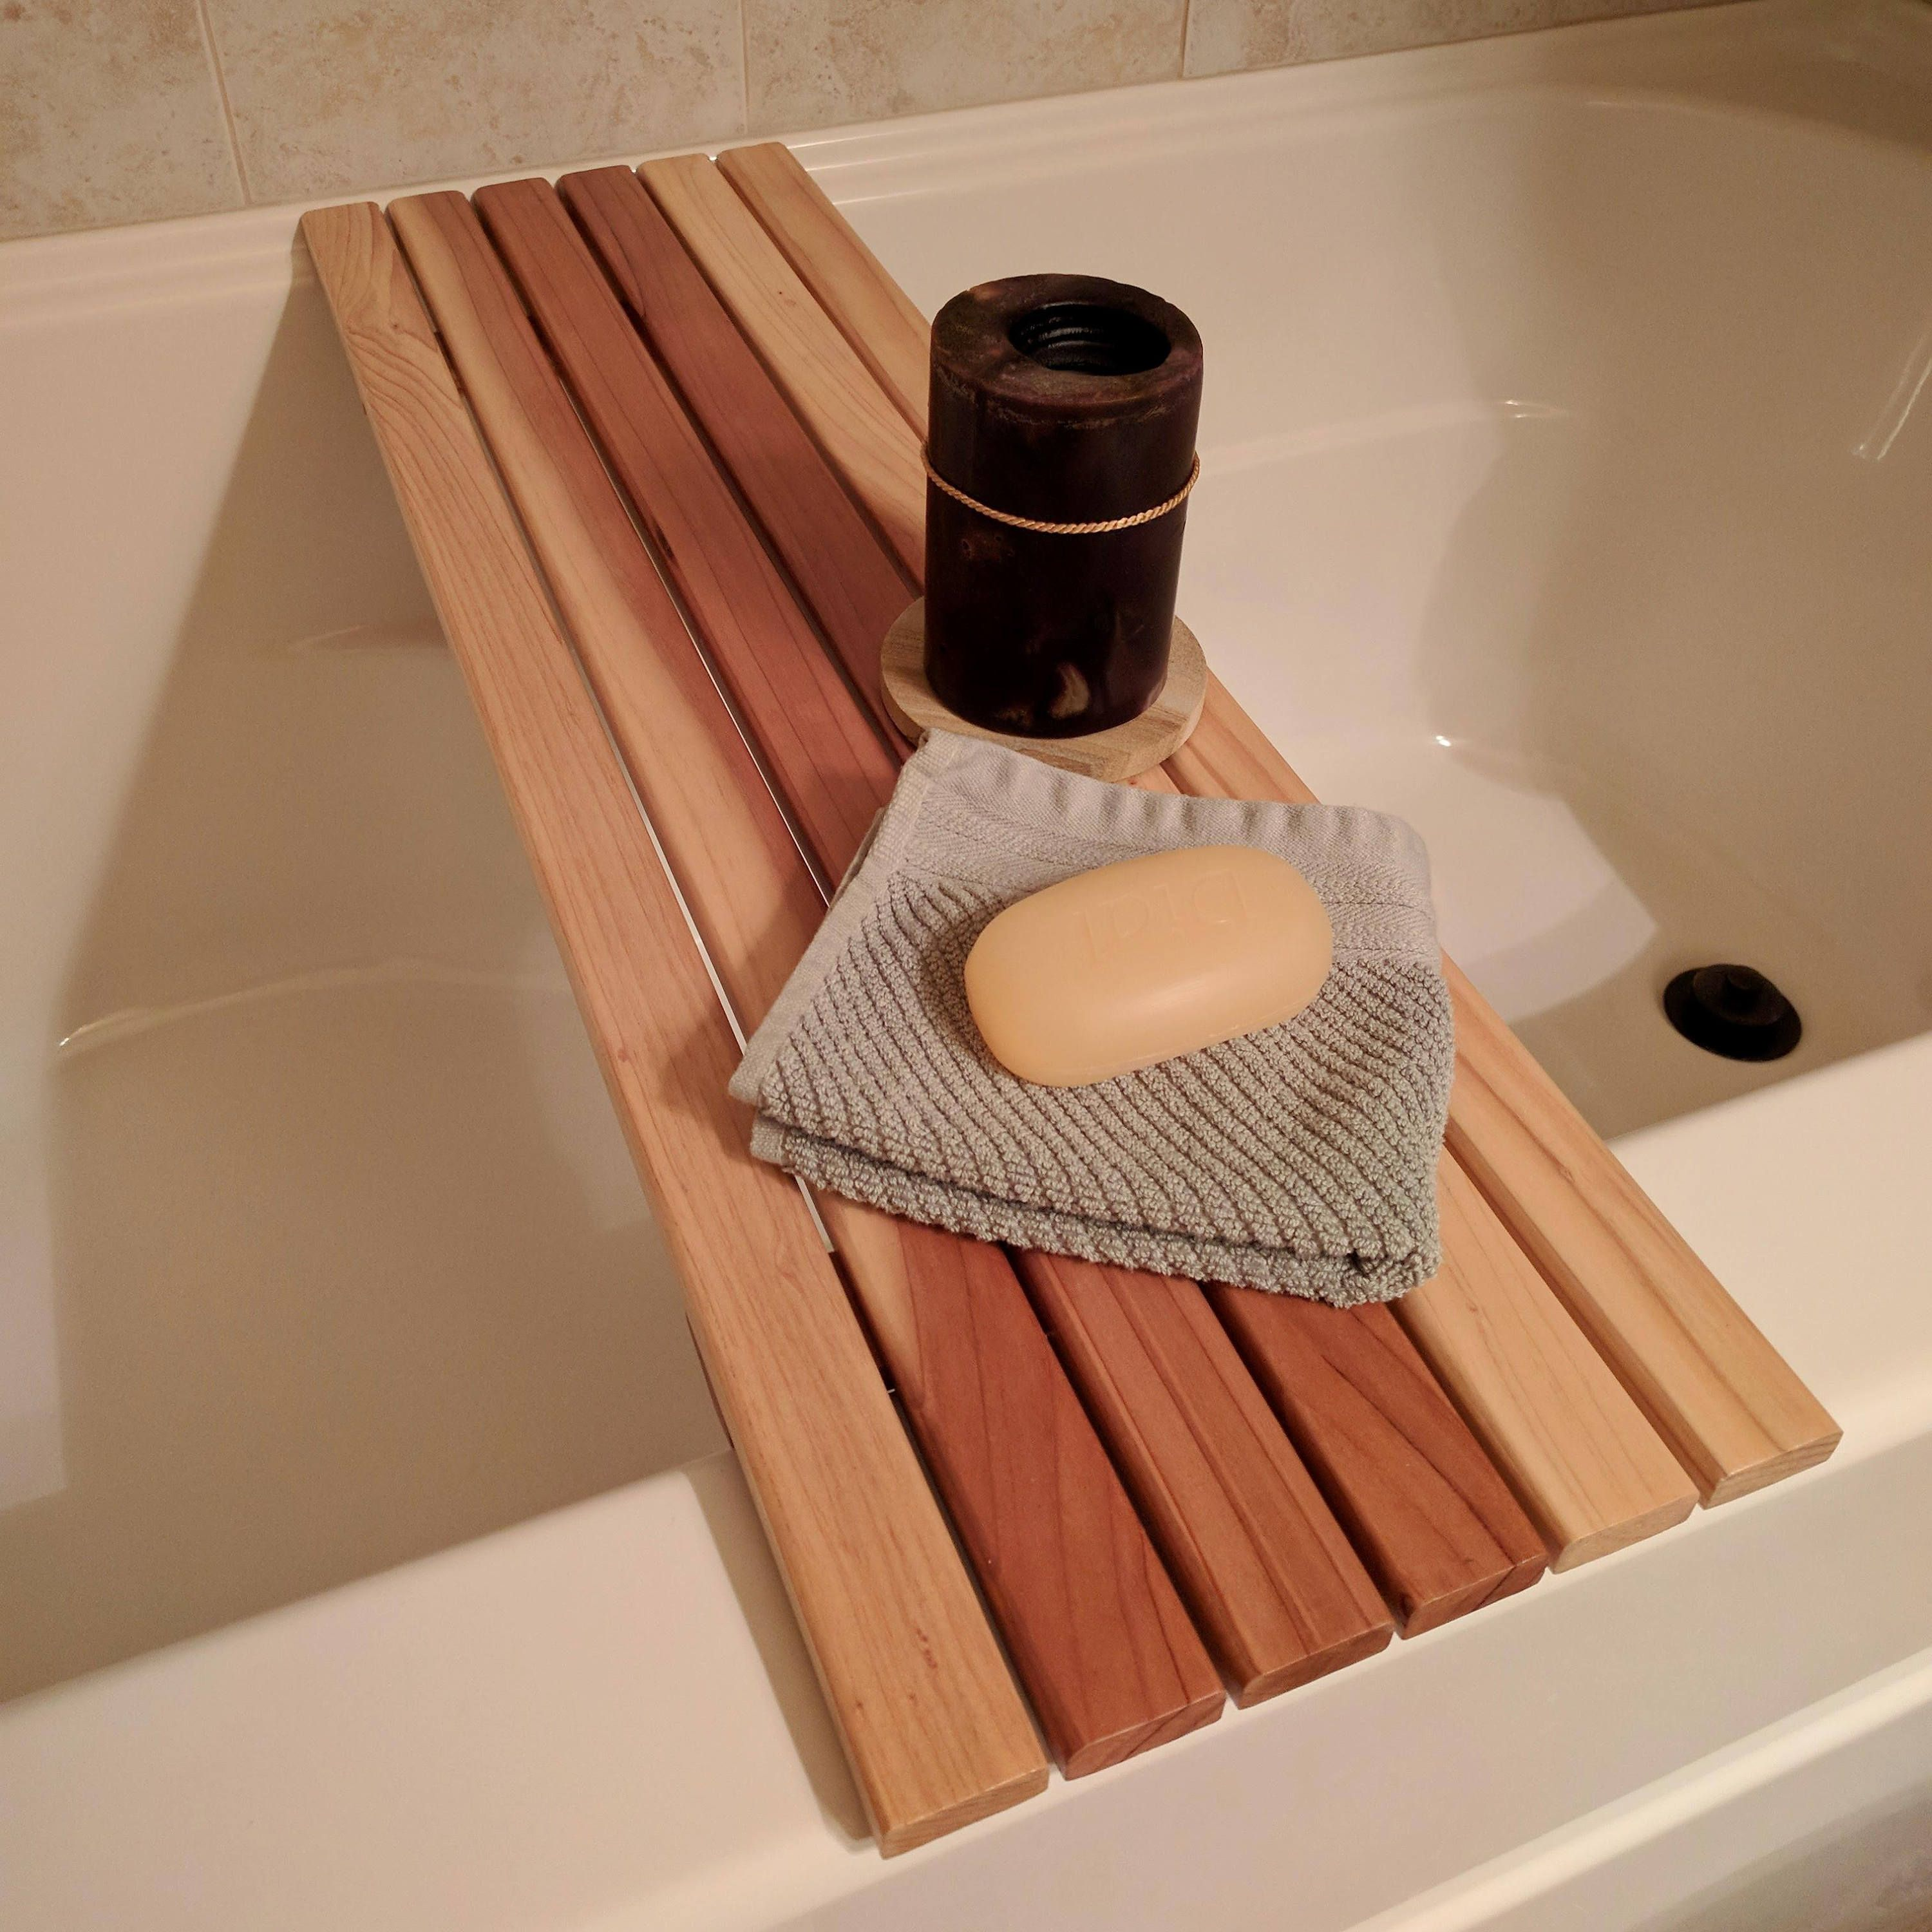 Pin by Way Cool Finds on For the Home | Pinterest | Bath caddy